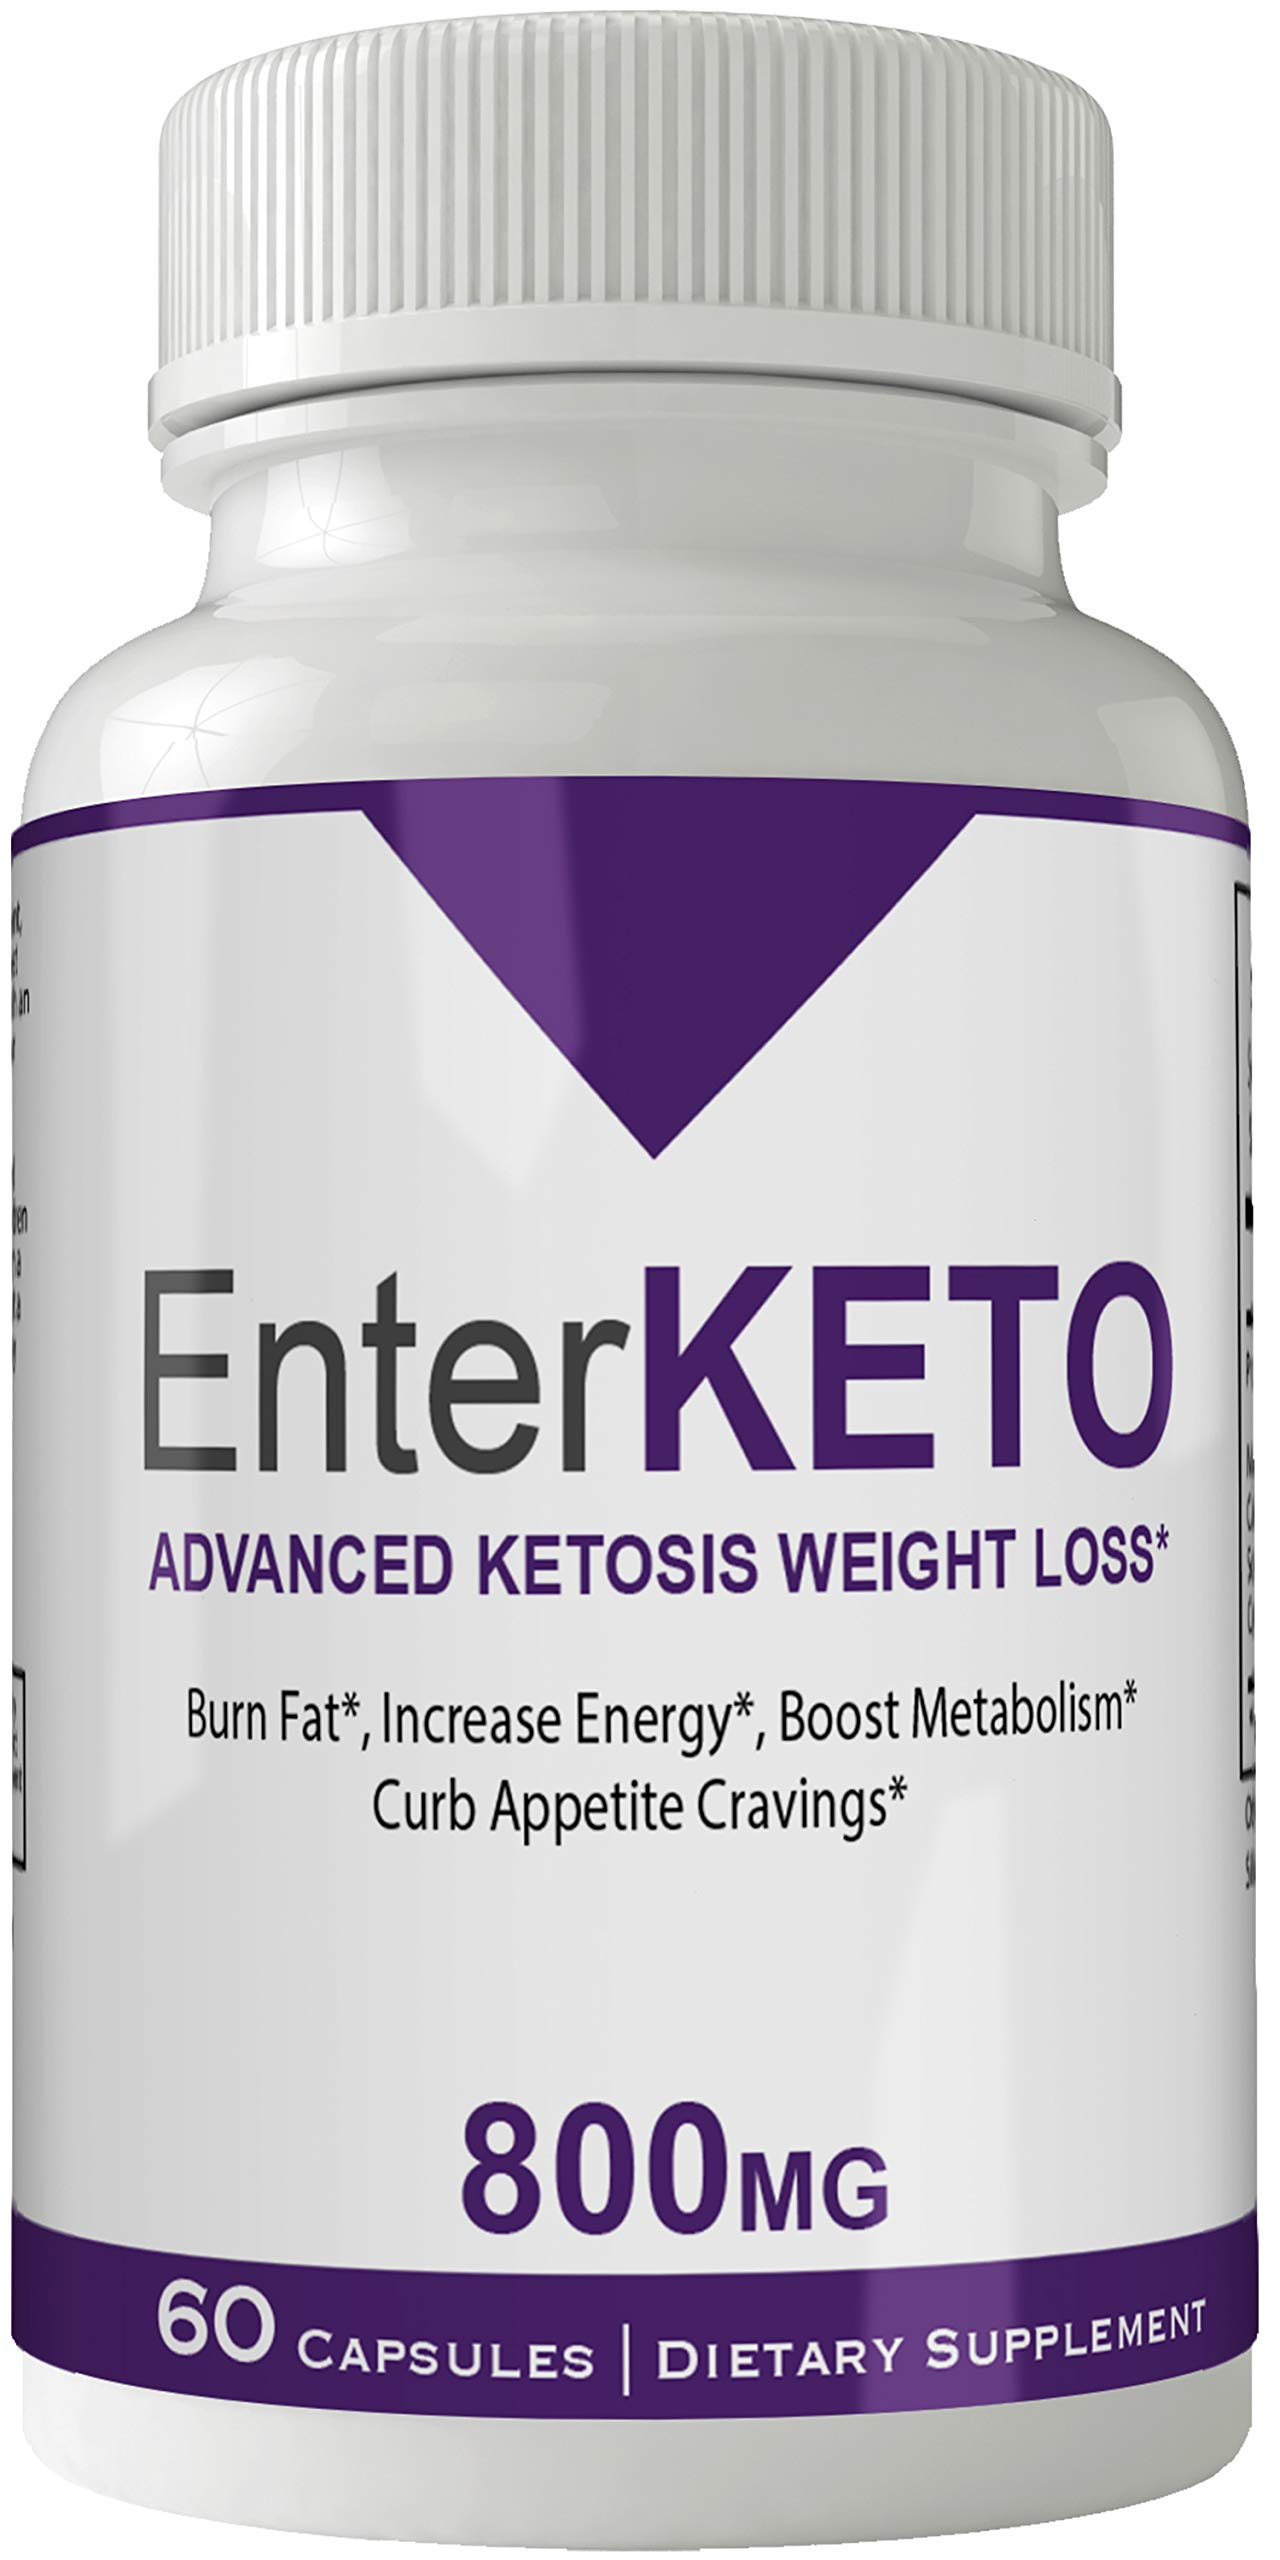 Enter Keto Pills Advance Weight Loss Supplement Appetite Suppressant Natural Ketogenic 800 mg Formula with BHB Salts Ketone Diet Capsules to Boost Metabolism, Energy and Focus